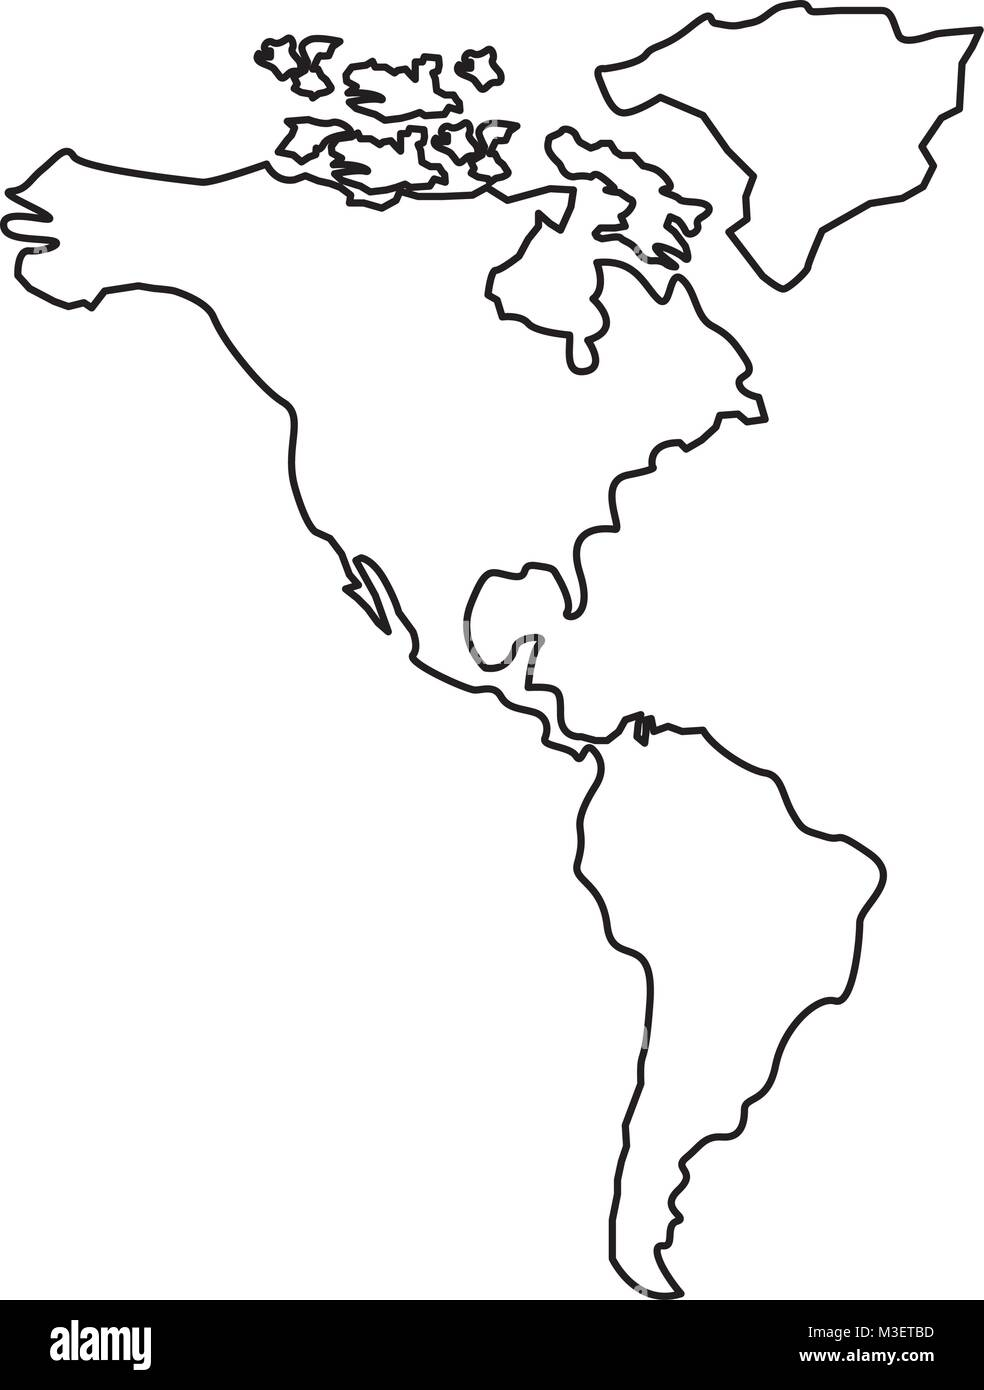 North America Map Black And White Stock Photos Images Alamy